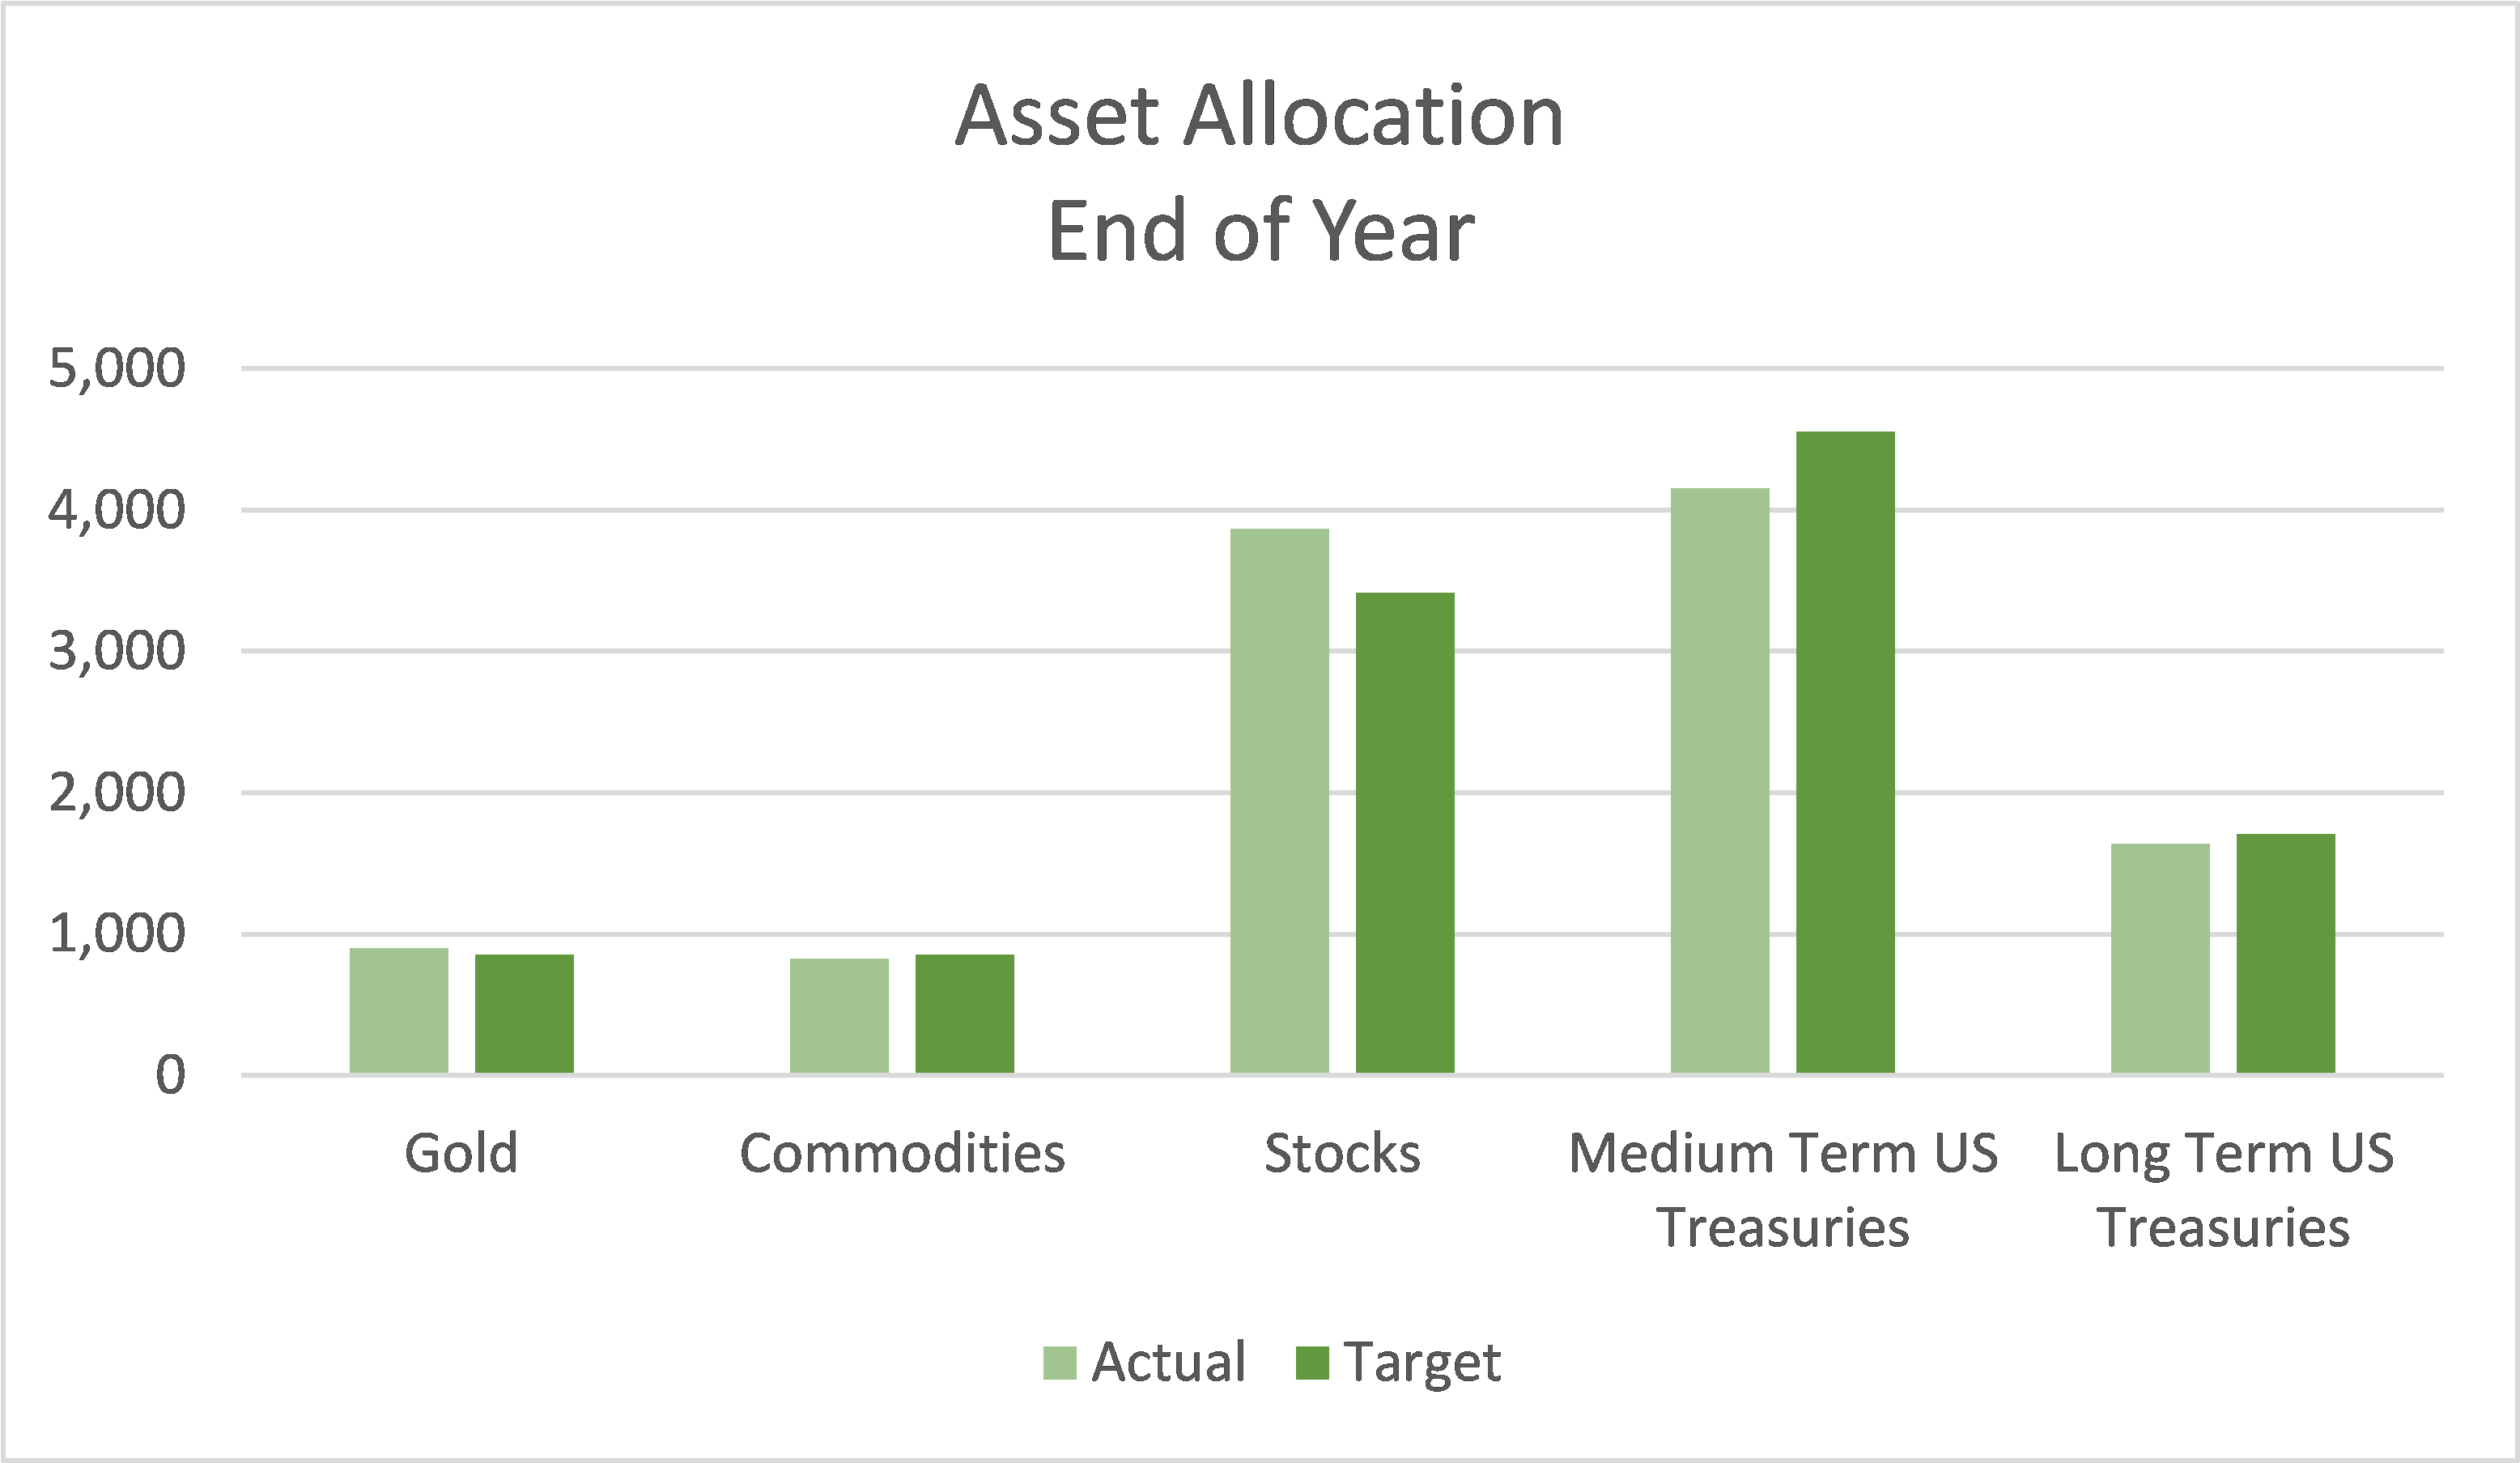 End of year results compared to target for 2019 under the All Seasons portfolio